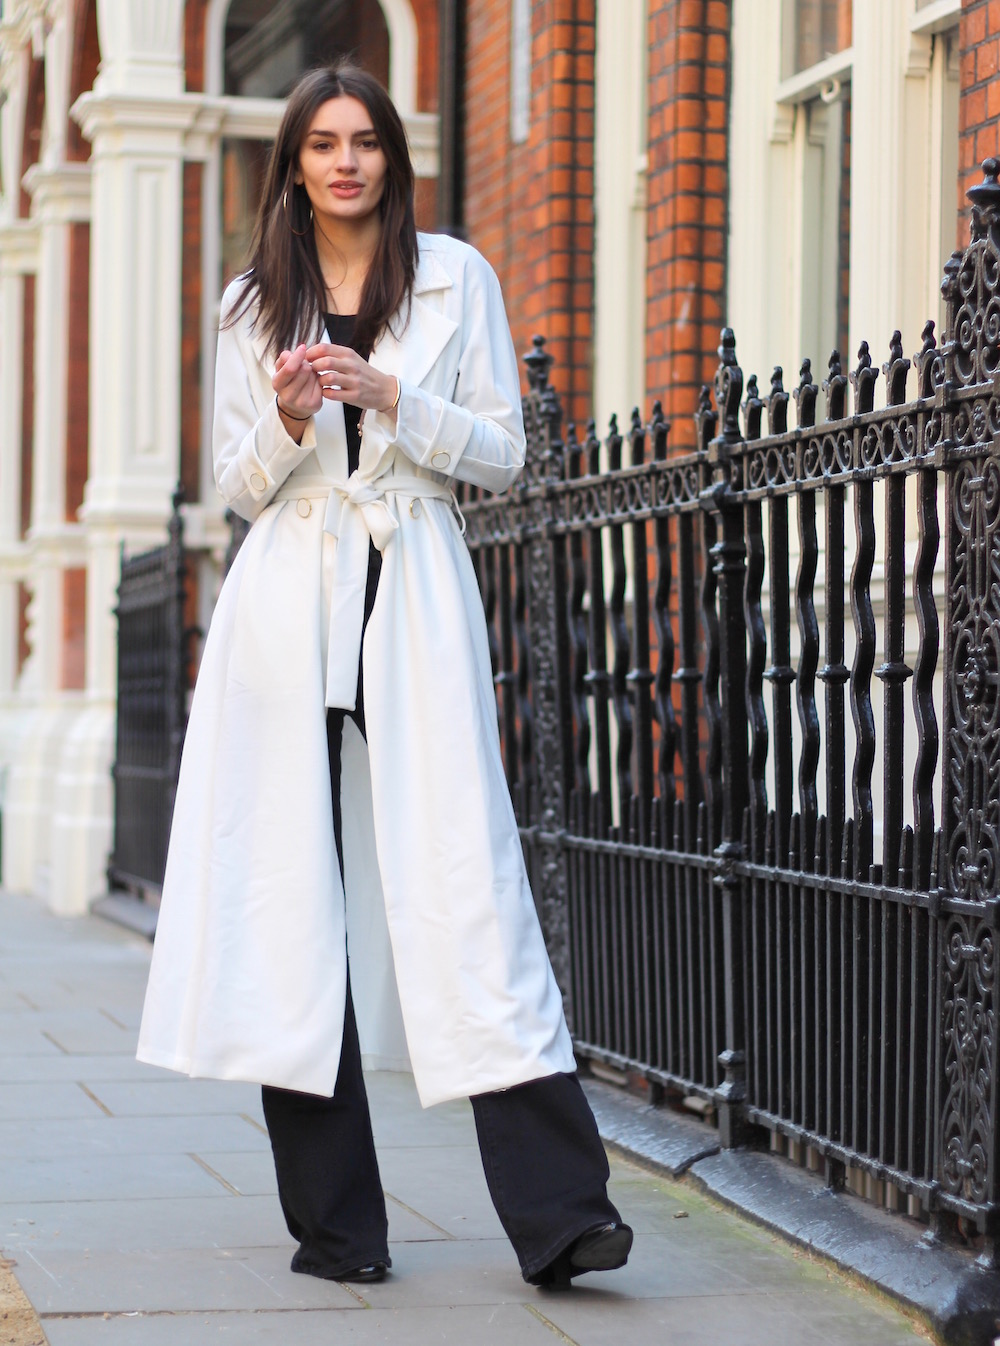 duster coat and flares